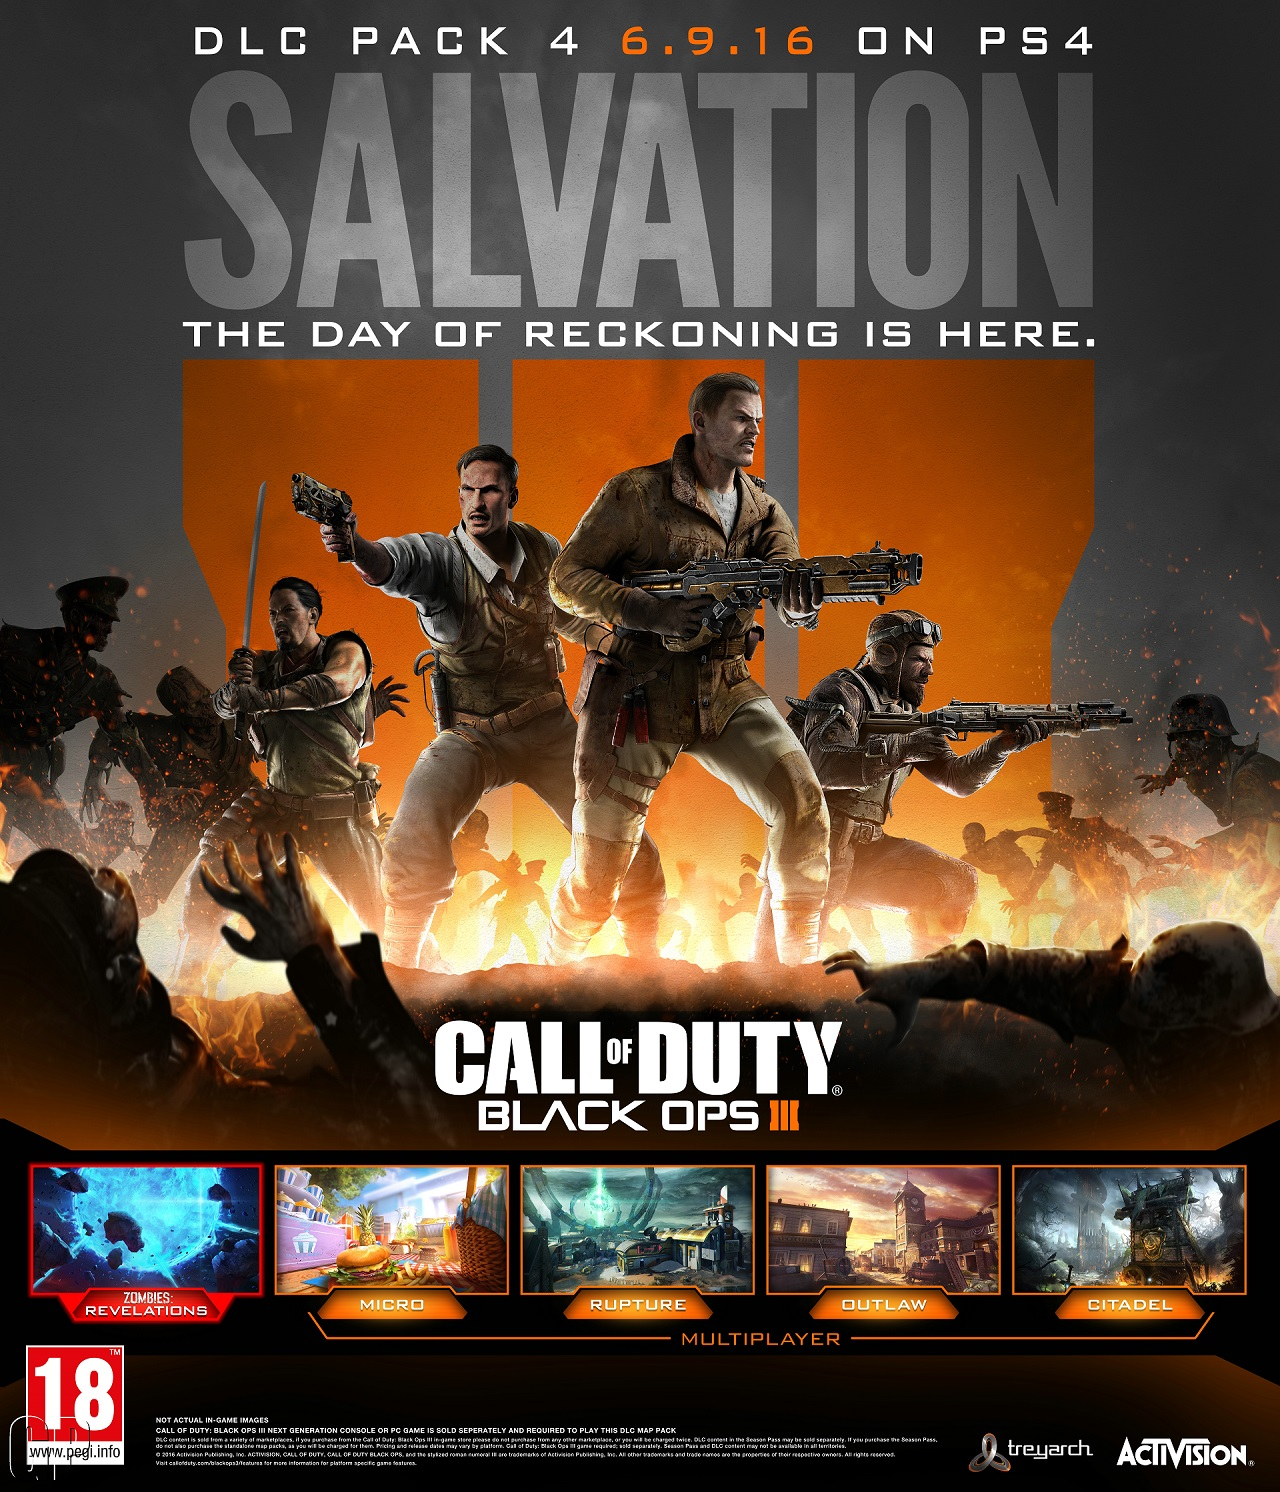 Call Of Duty: Black Ops 3 DLC 4 'Salvation' Announced Dlc Maps Black Ops on black ops first strike maps, black ops multiplayer mods pc, modern warfare dlc maps, black ops 1 maps, black ops 3 multiplayer, black ops add-on maps, black ops 3 dlc maps, black ops stadium, black ops origins map layout, black ops 1 cheats for xbox 360, cod black ops rezurrection maps, gta 5 dlc maps, cod dlc maps, black ops vengeance, black ops dlc map names, black ops2 maps, black ops dlc maps list, call of duty black ops dlc maps, black ops ii dlc, black ops 3 release,